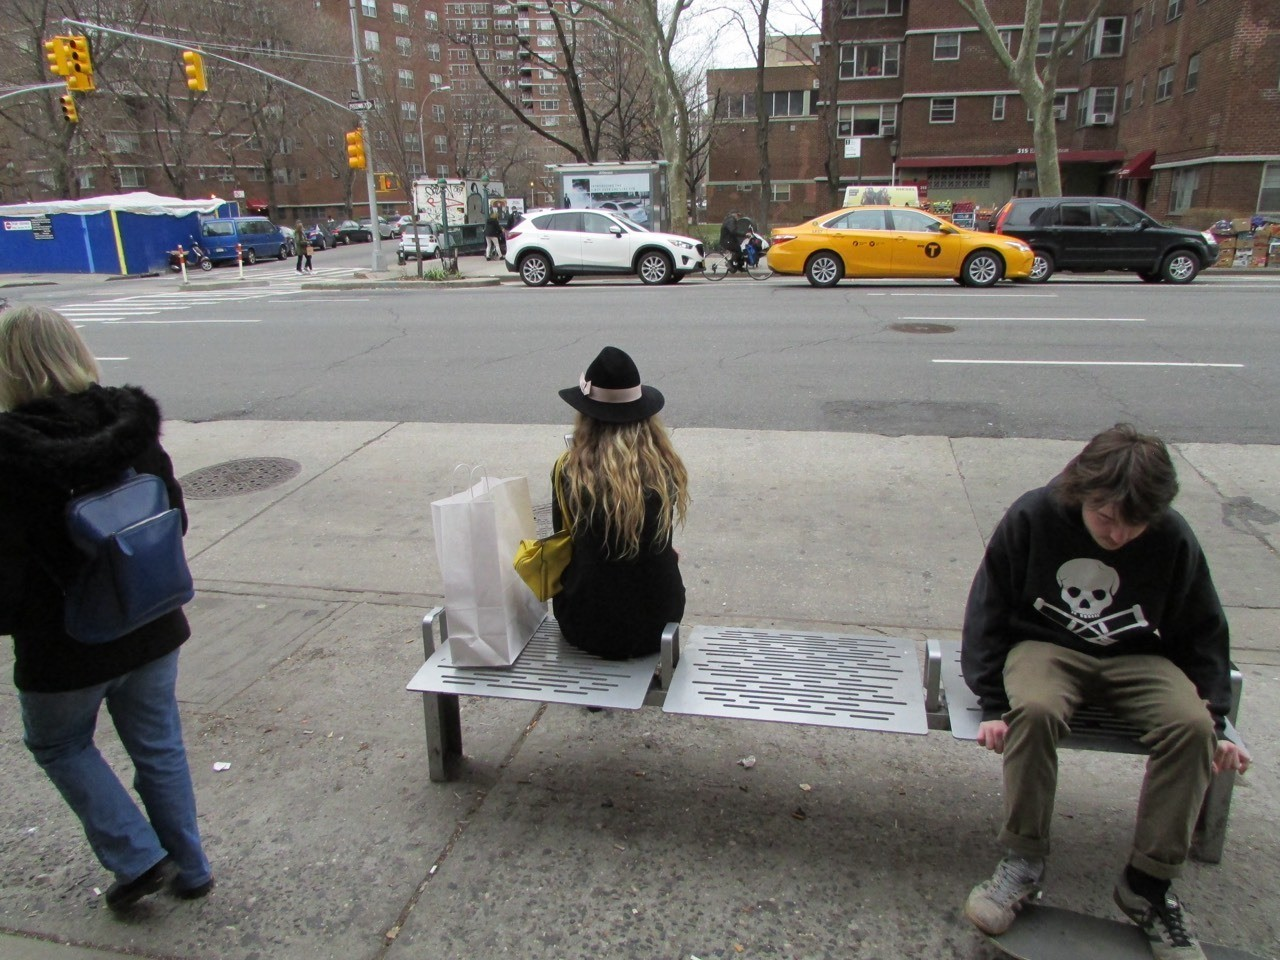 Chelsea, NY, waiting on the bus